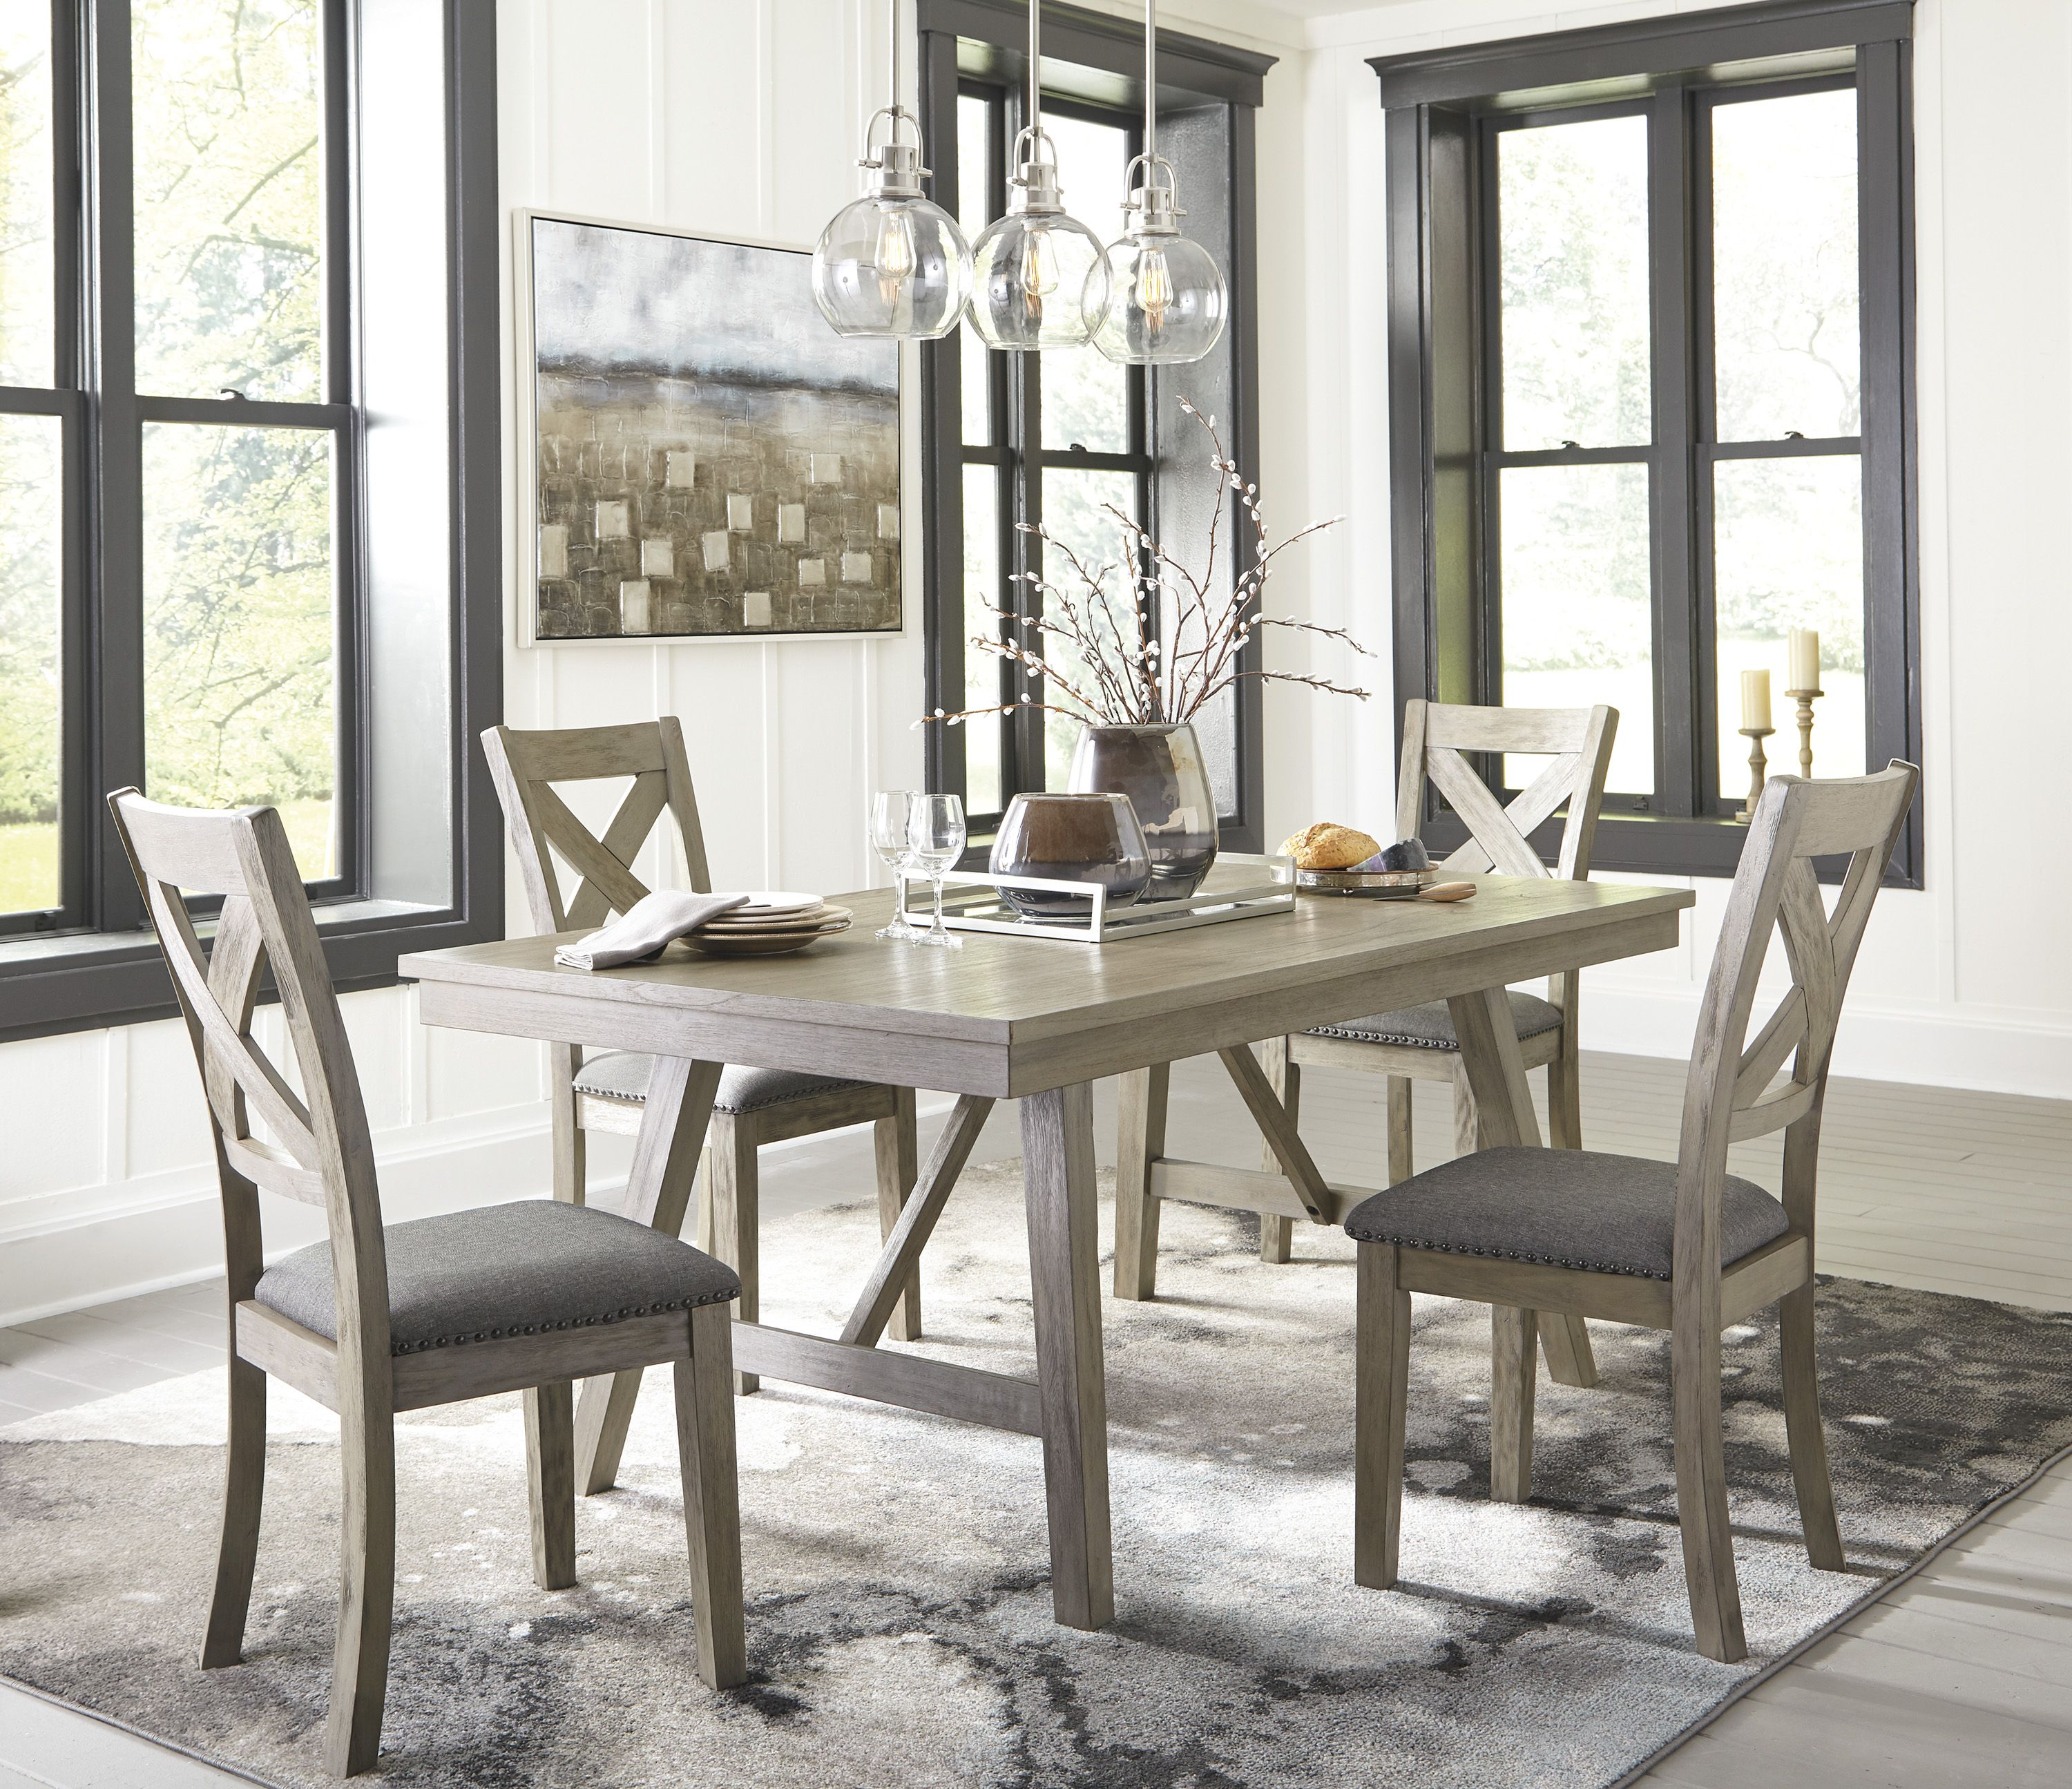 Modern Farmhouse Never Looked Better The Aldwin 5 Piece Dining Allures With It S Wi Rectangular Dining Room Table Dining Room Sets Rectangular Dining Room Set